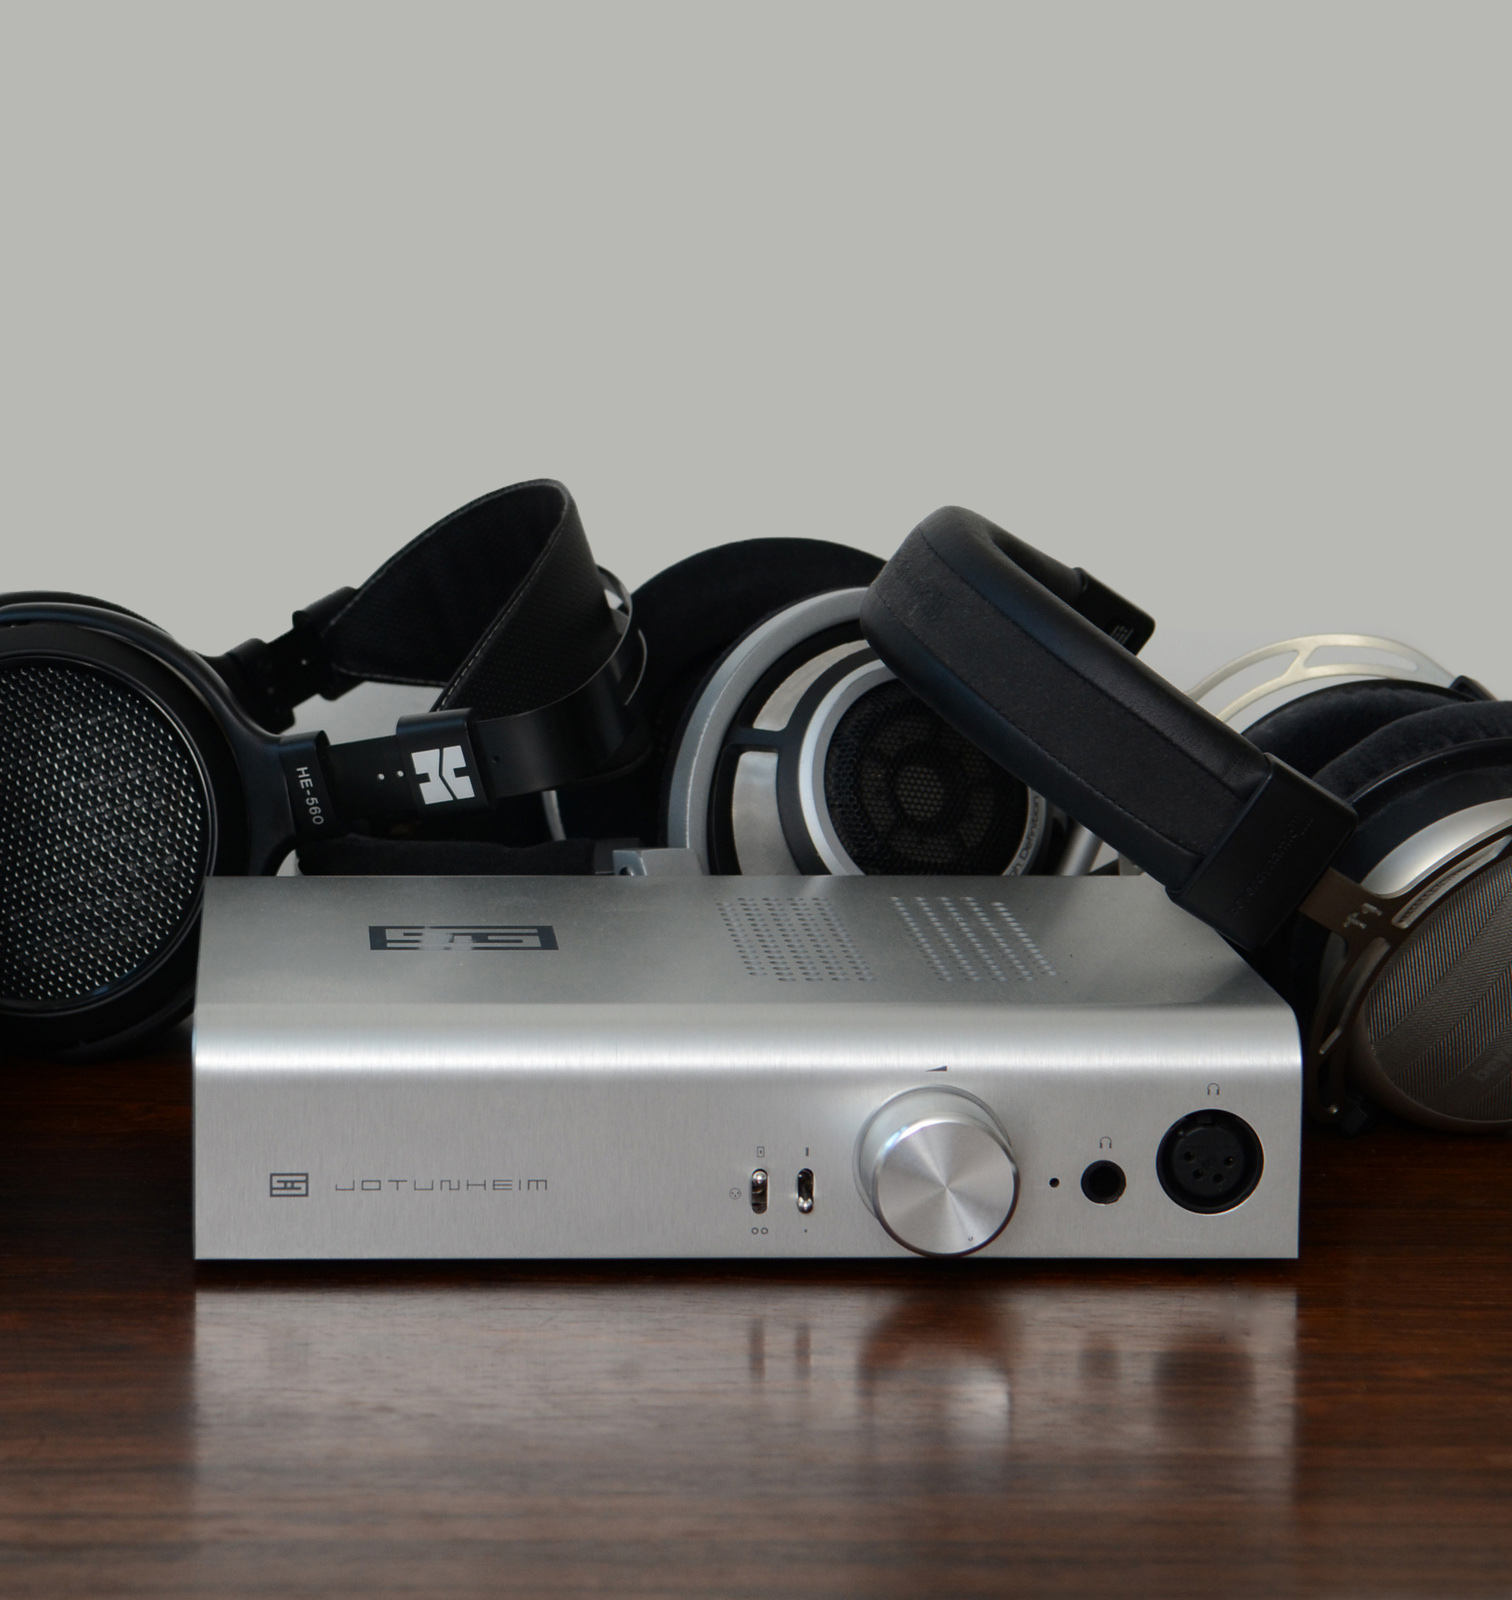 THE SCHIIT JOTUNHEIM REVIEW | The Headphoneer